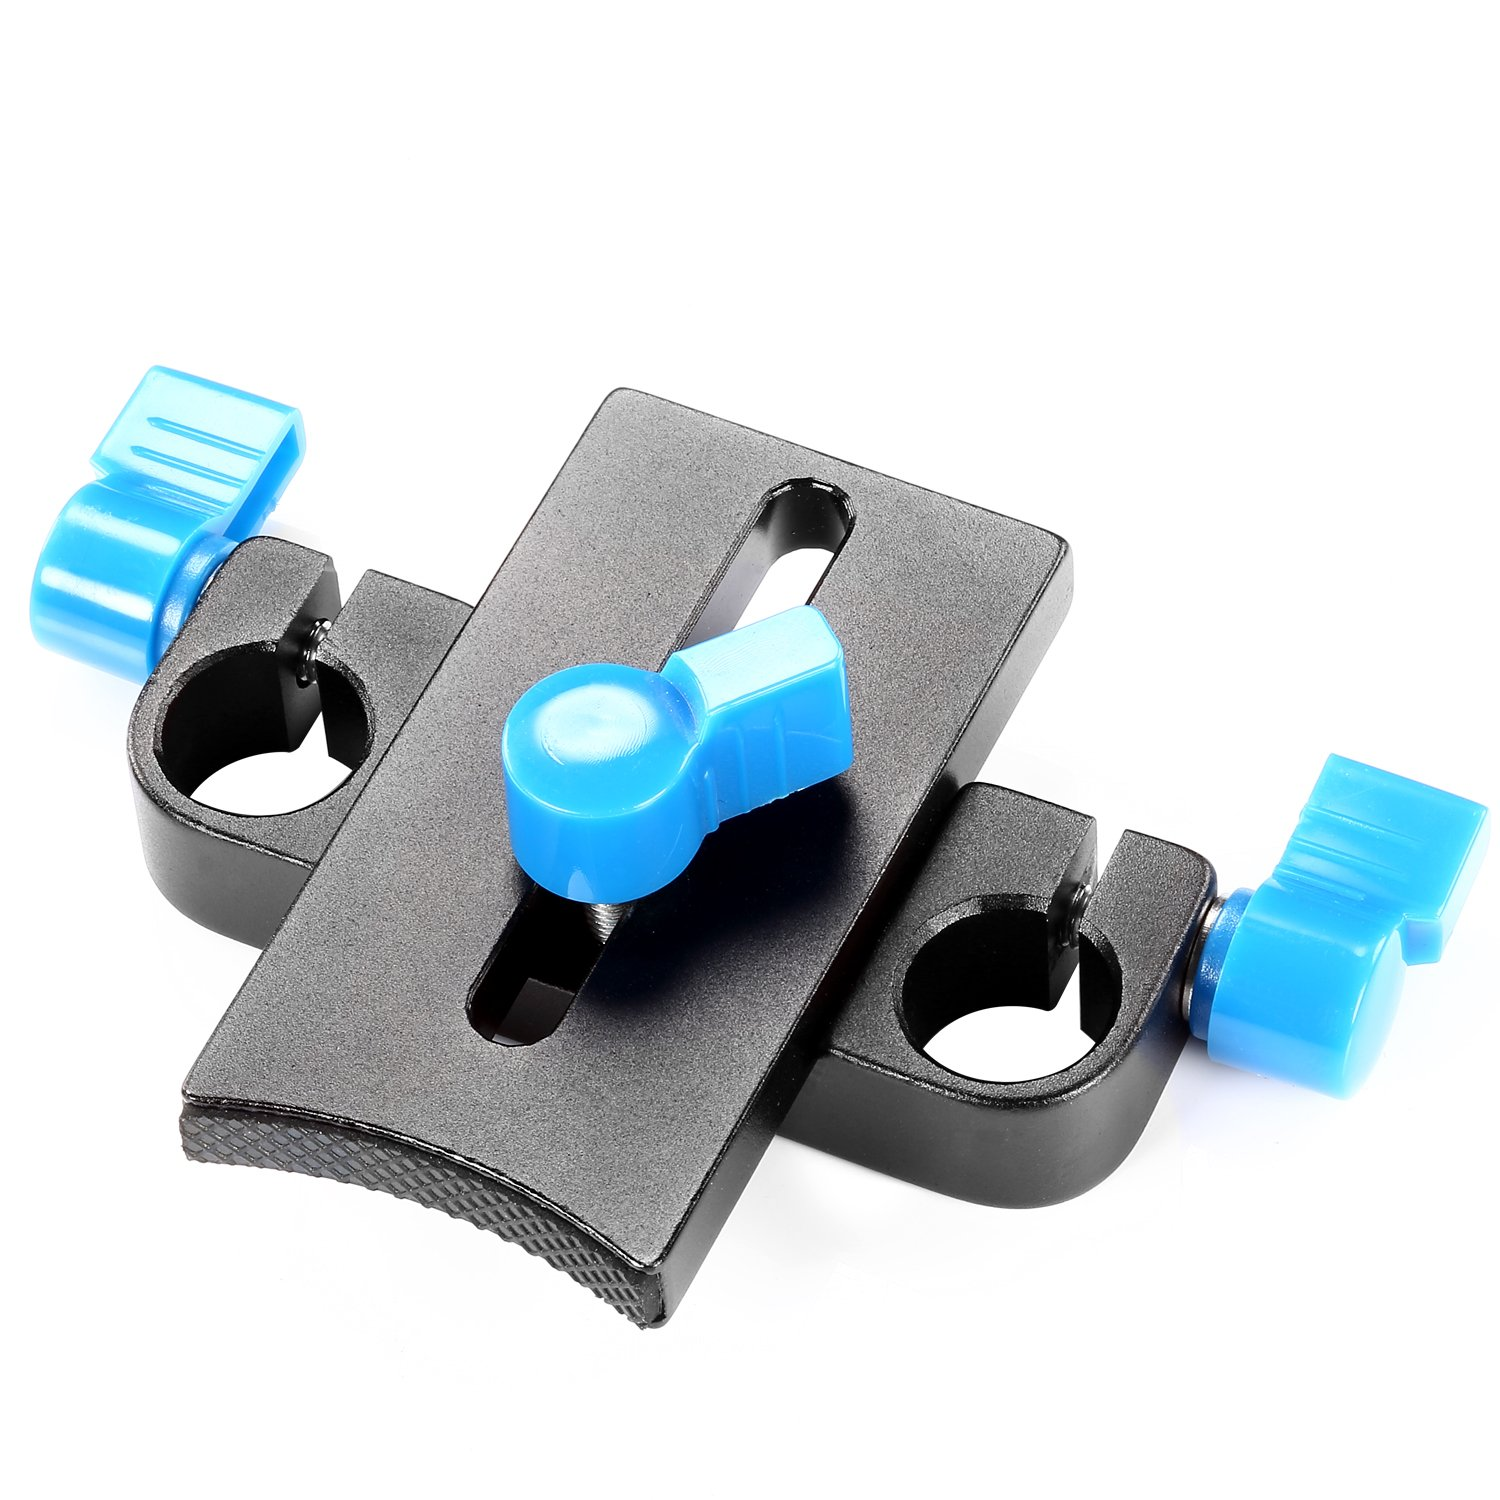 Neewer Professional Flexible Lens Rod Support Mount Clamp Holder Bracket for DSLR Rigs 15mm Rod Rail System